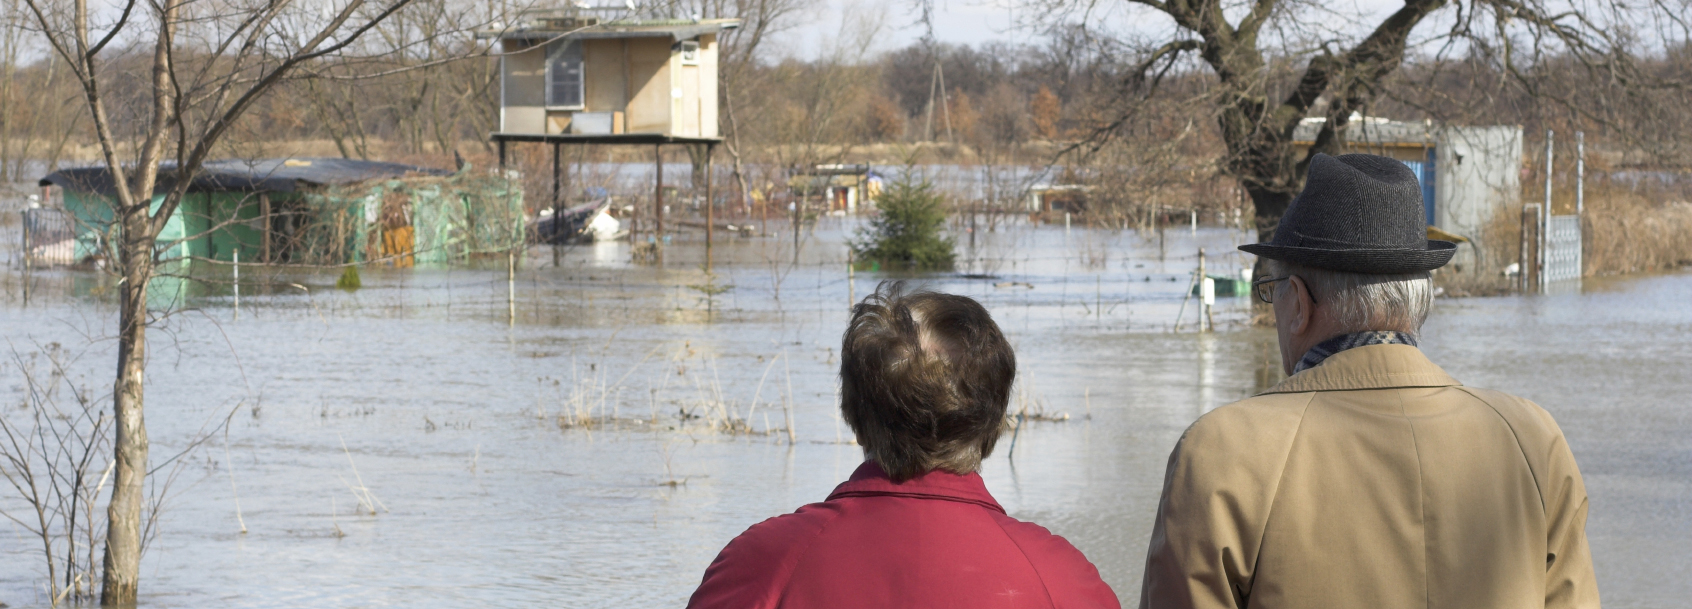 woman and man looking out over flooded houses and road